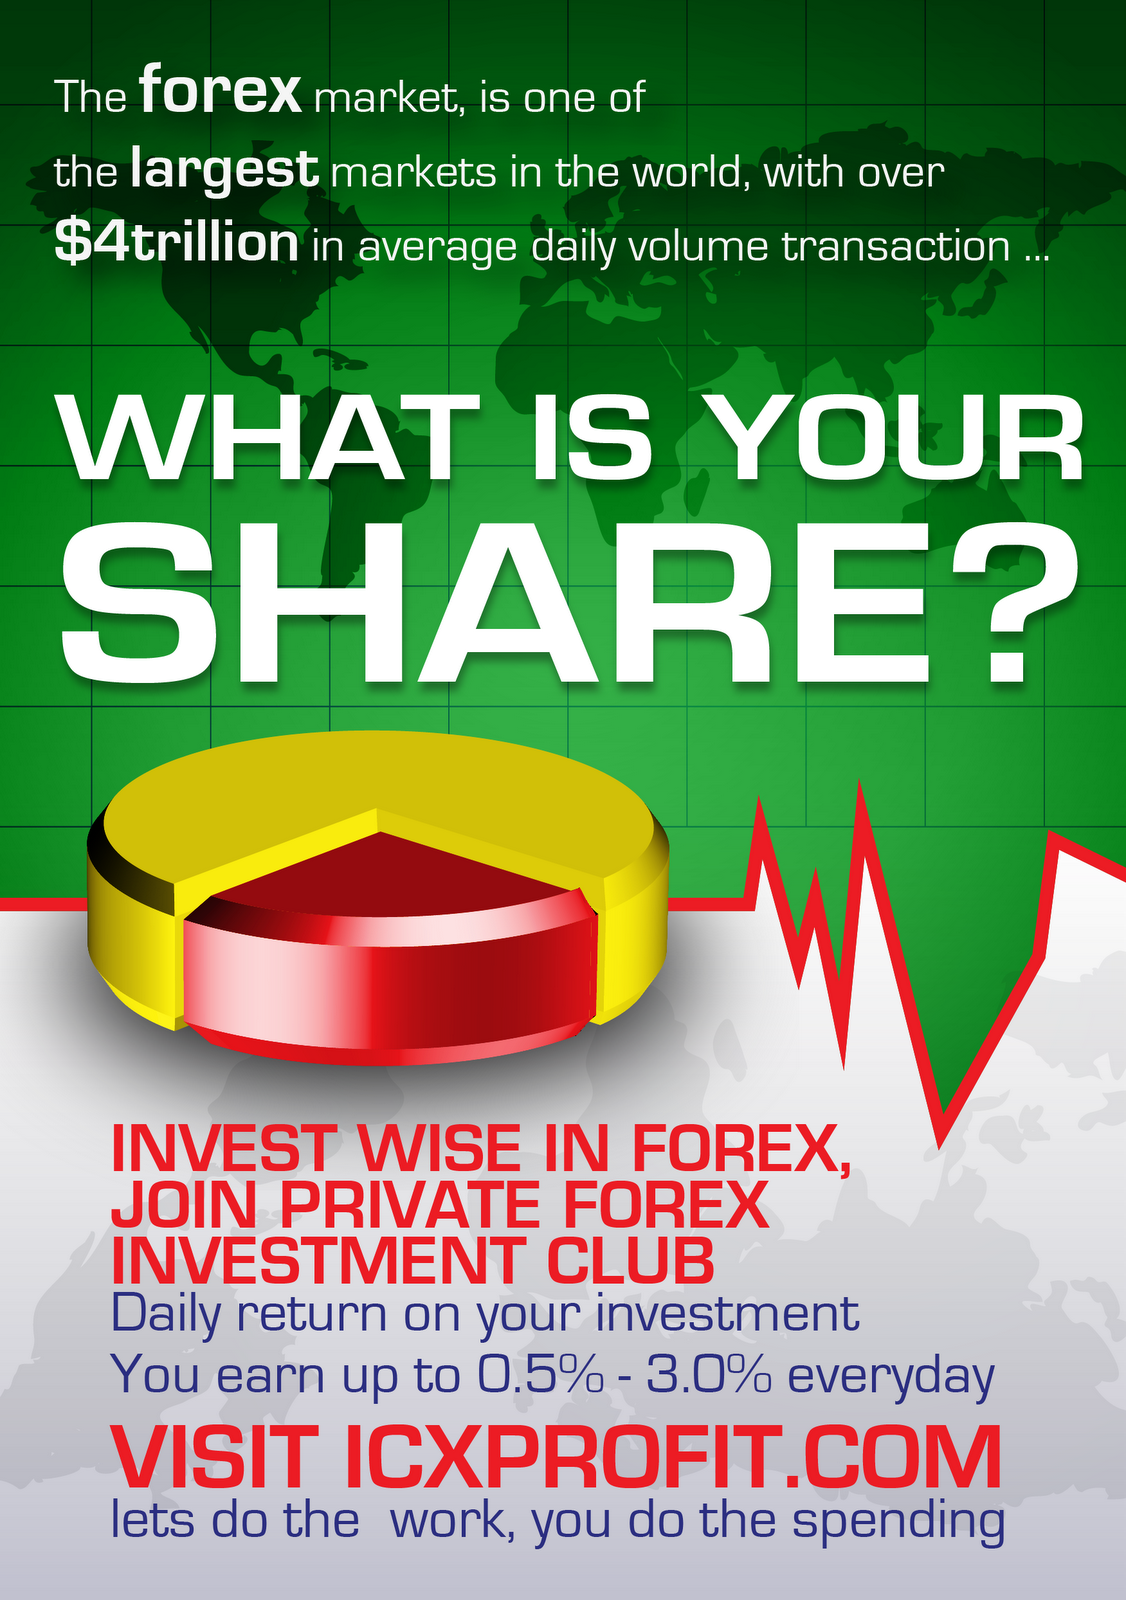 Rcfx forex investment group